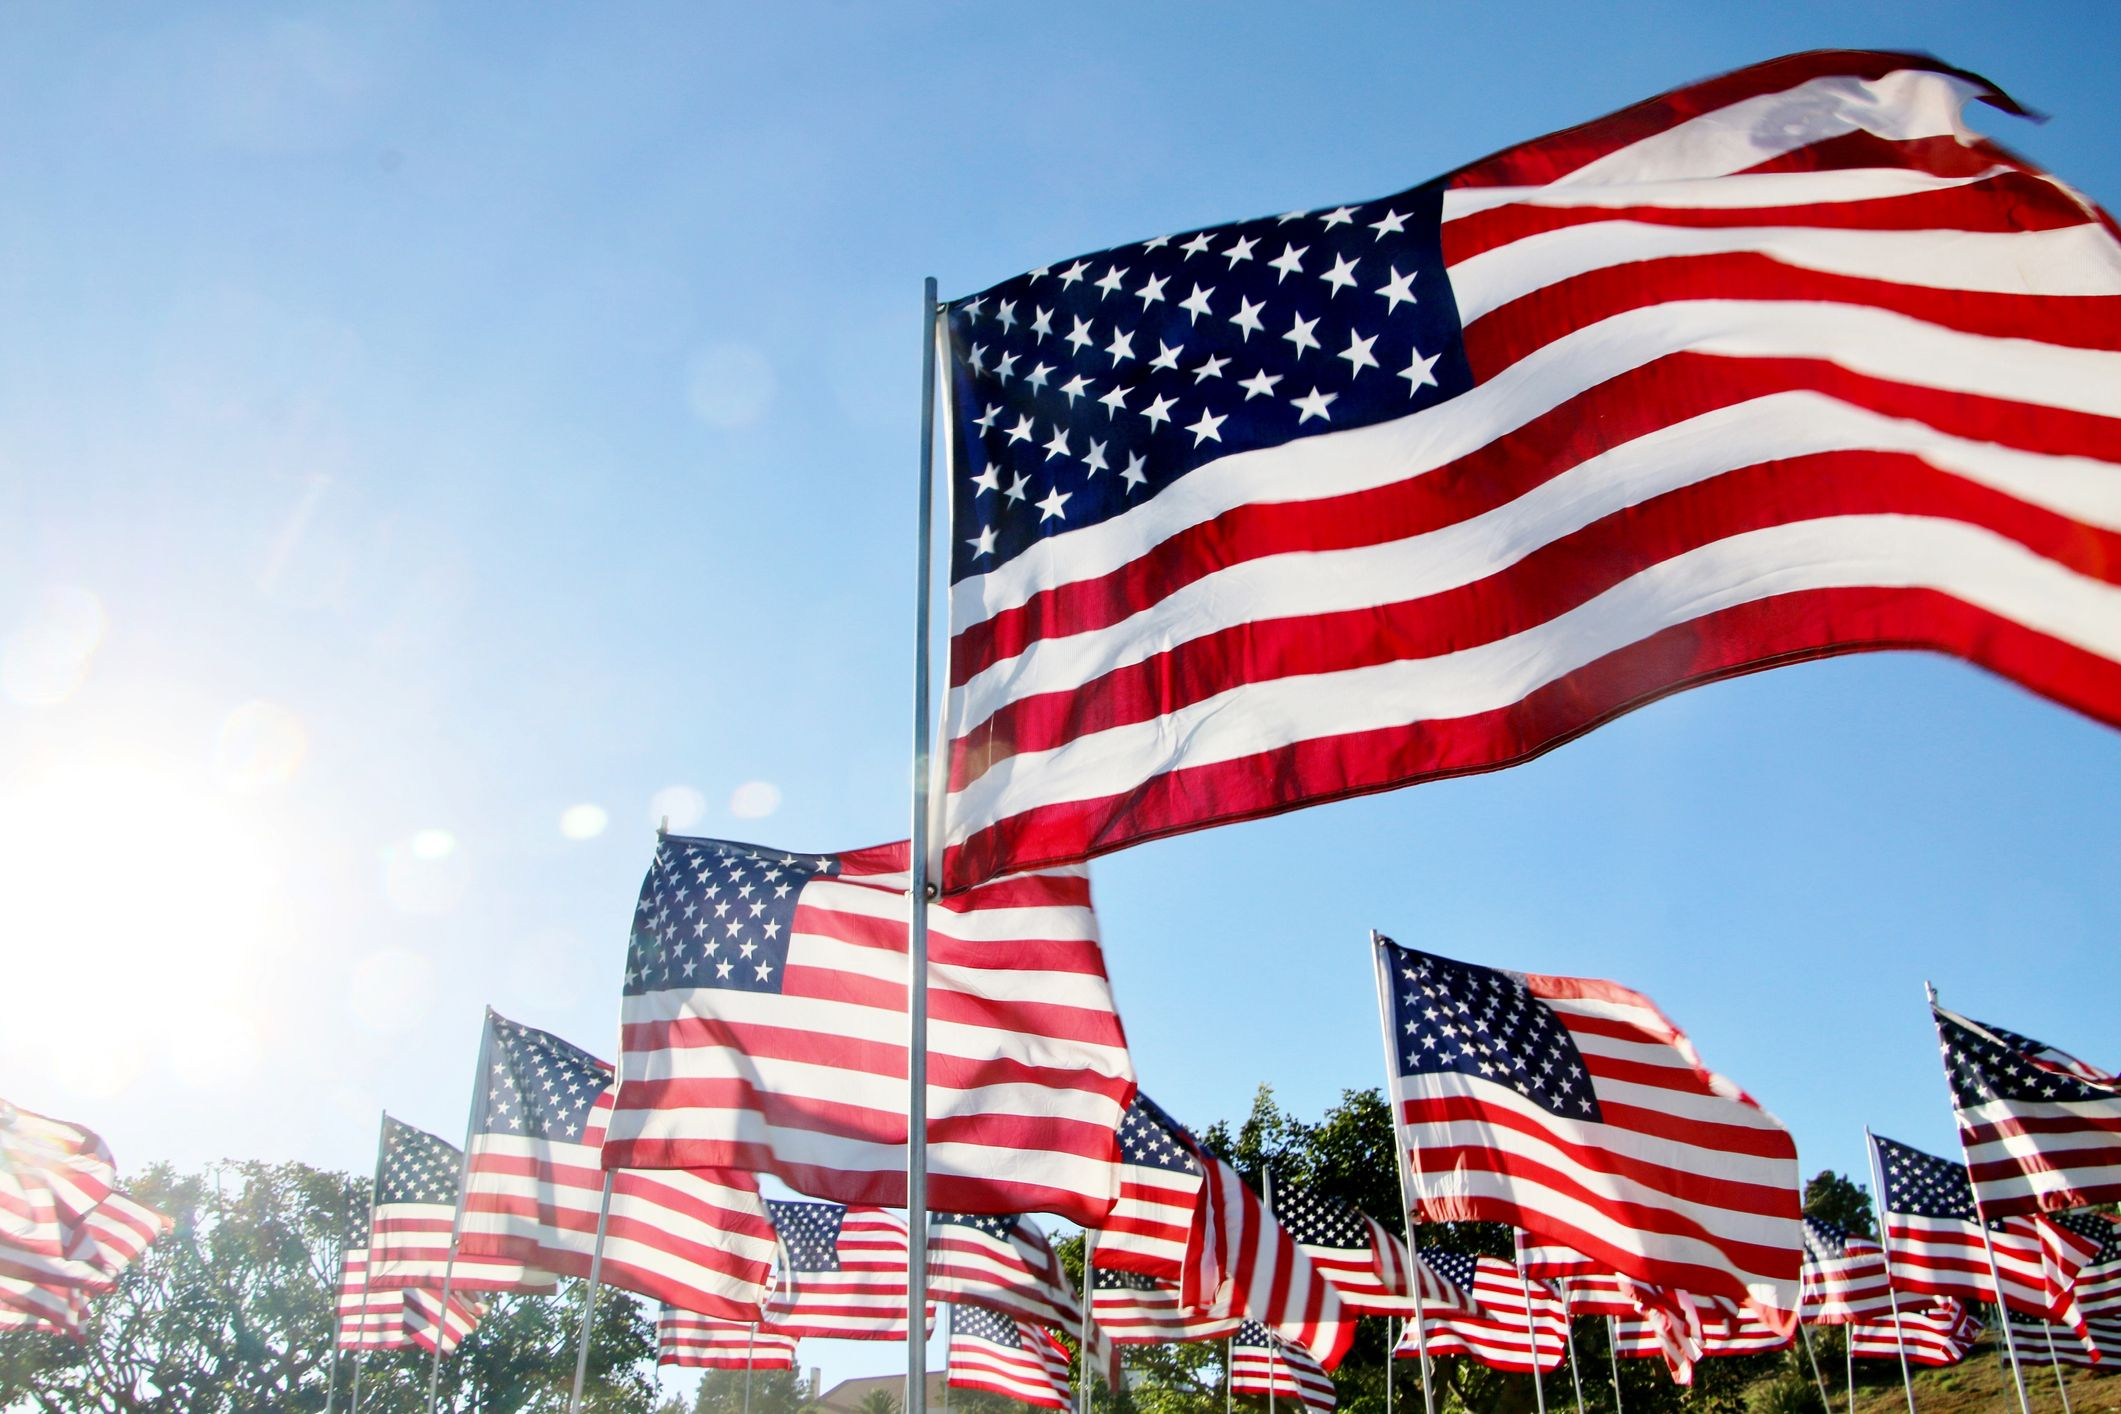 American Flag Etiquette - Rules on Displaying, Folding, and Caring for Your American  Flag